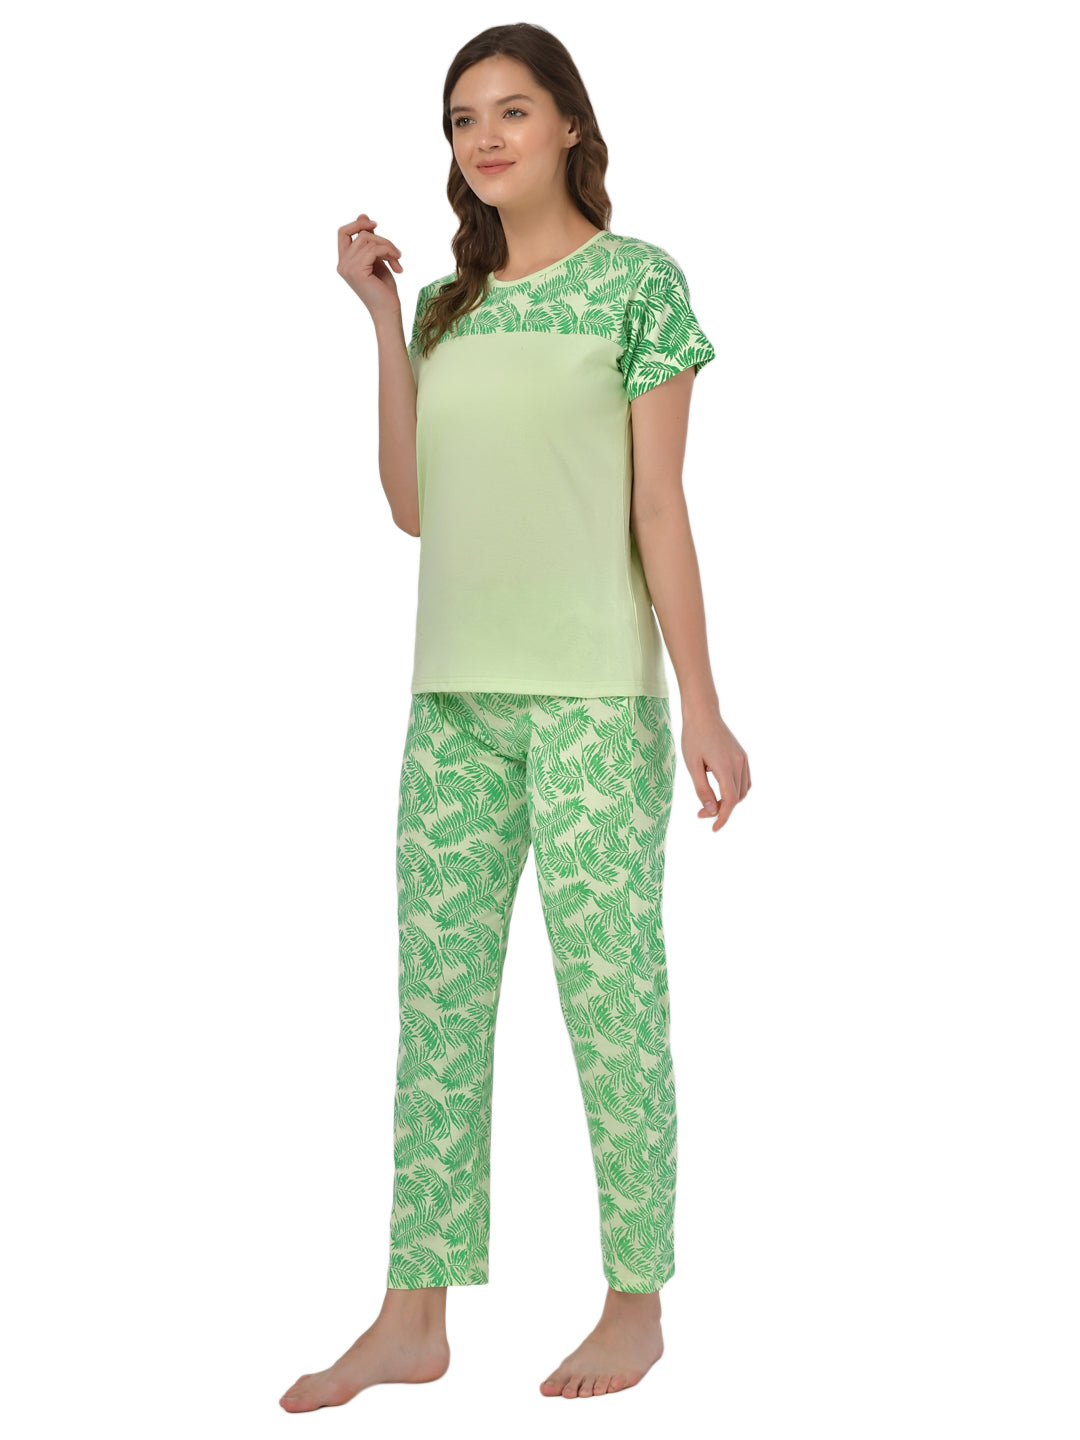 Klamotten Women's Sea Green Allover Printed Top Pyjama Set N32Gs